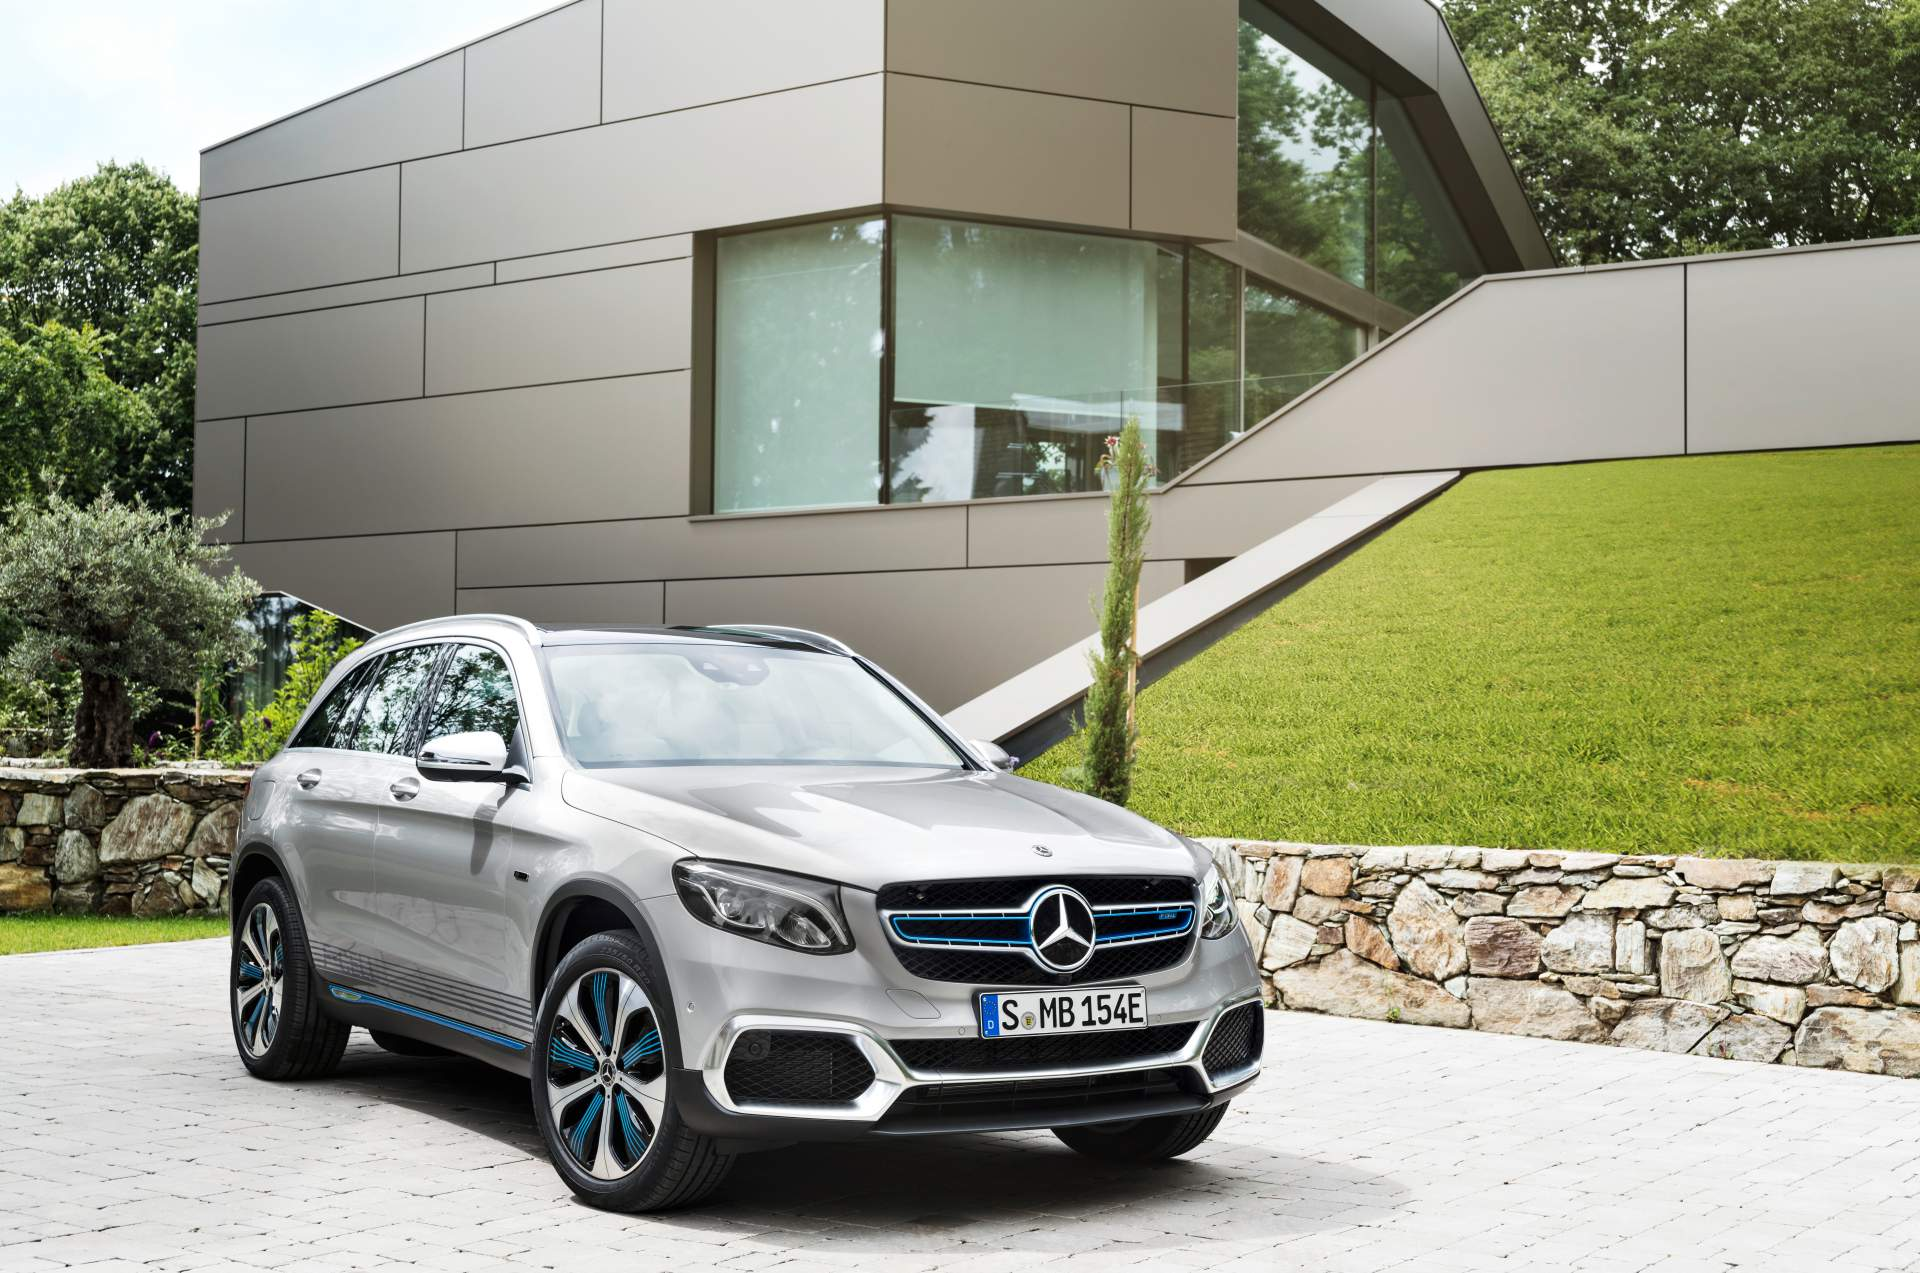 2019_Mercedes_GLC_F-Cell_0008